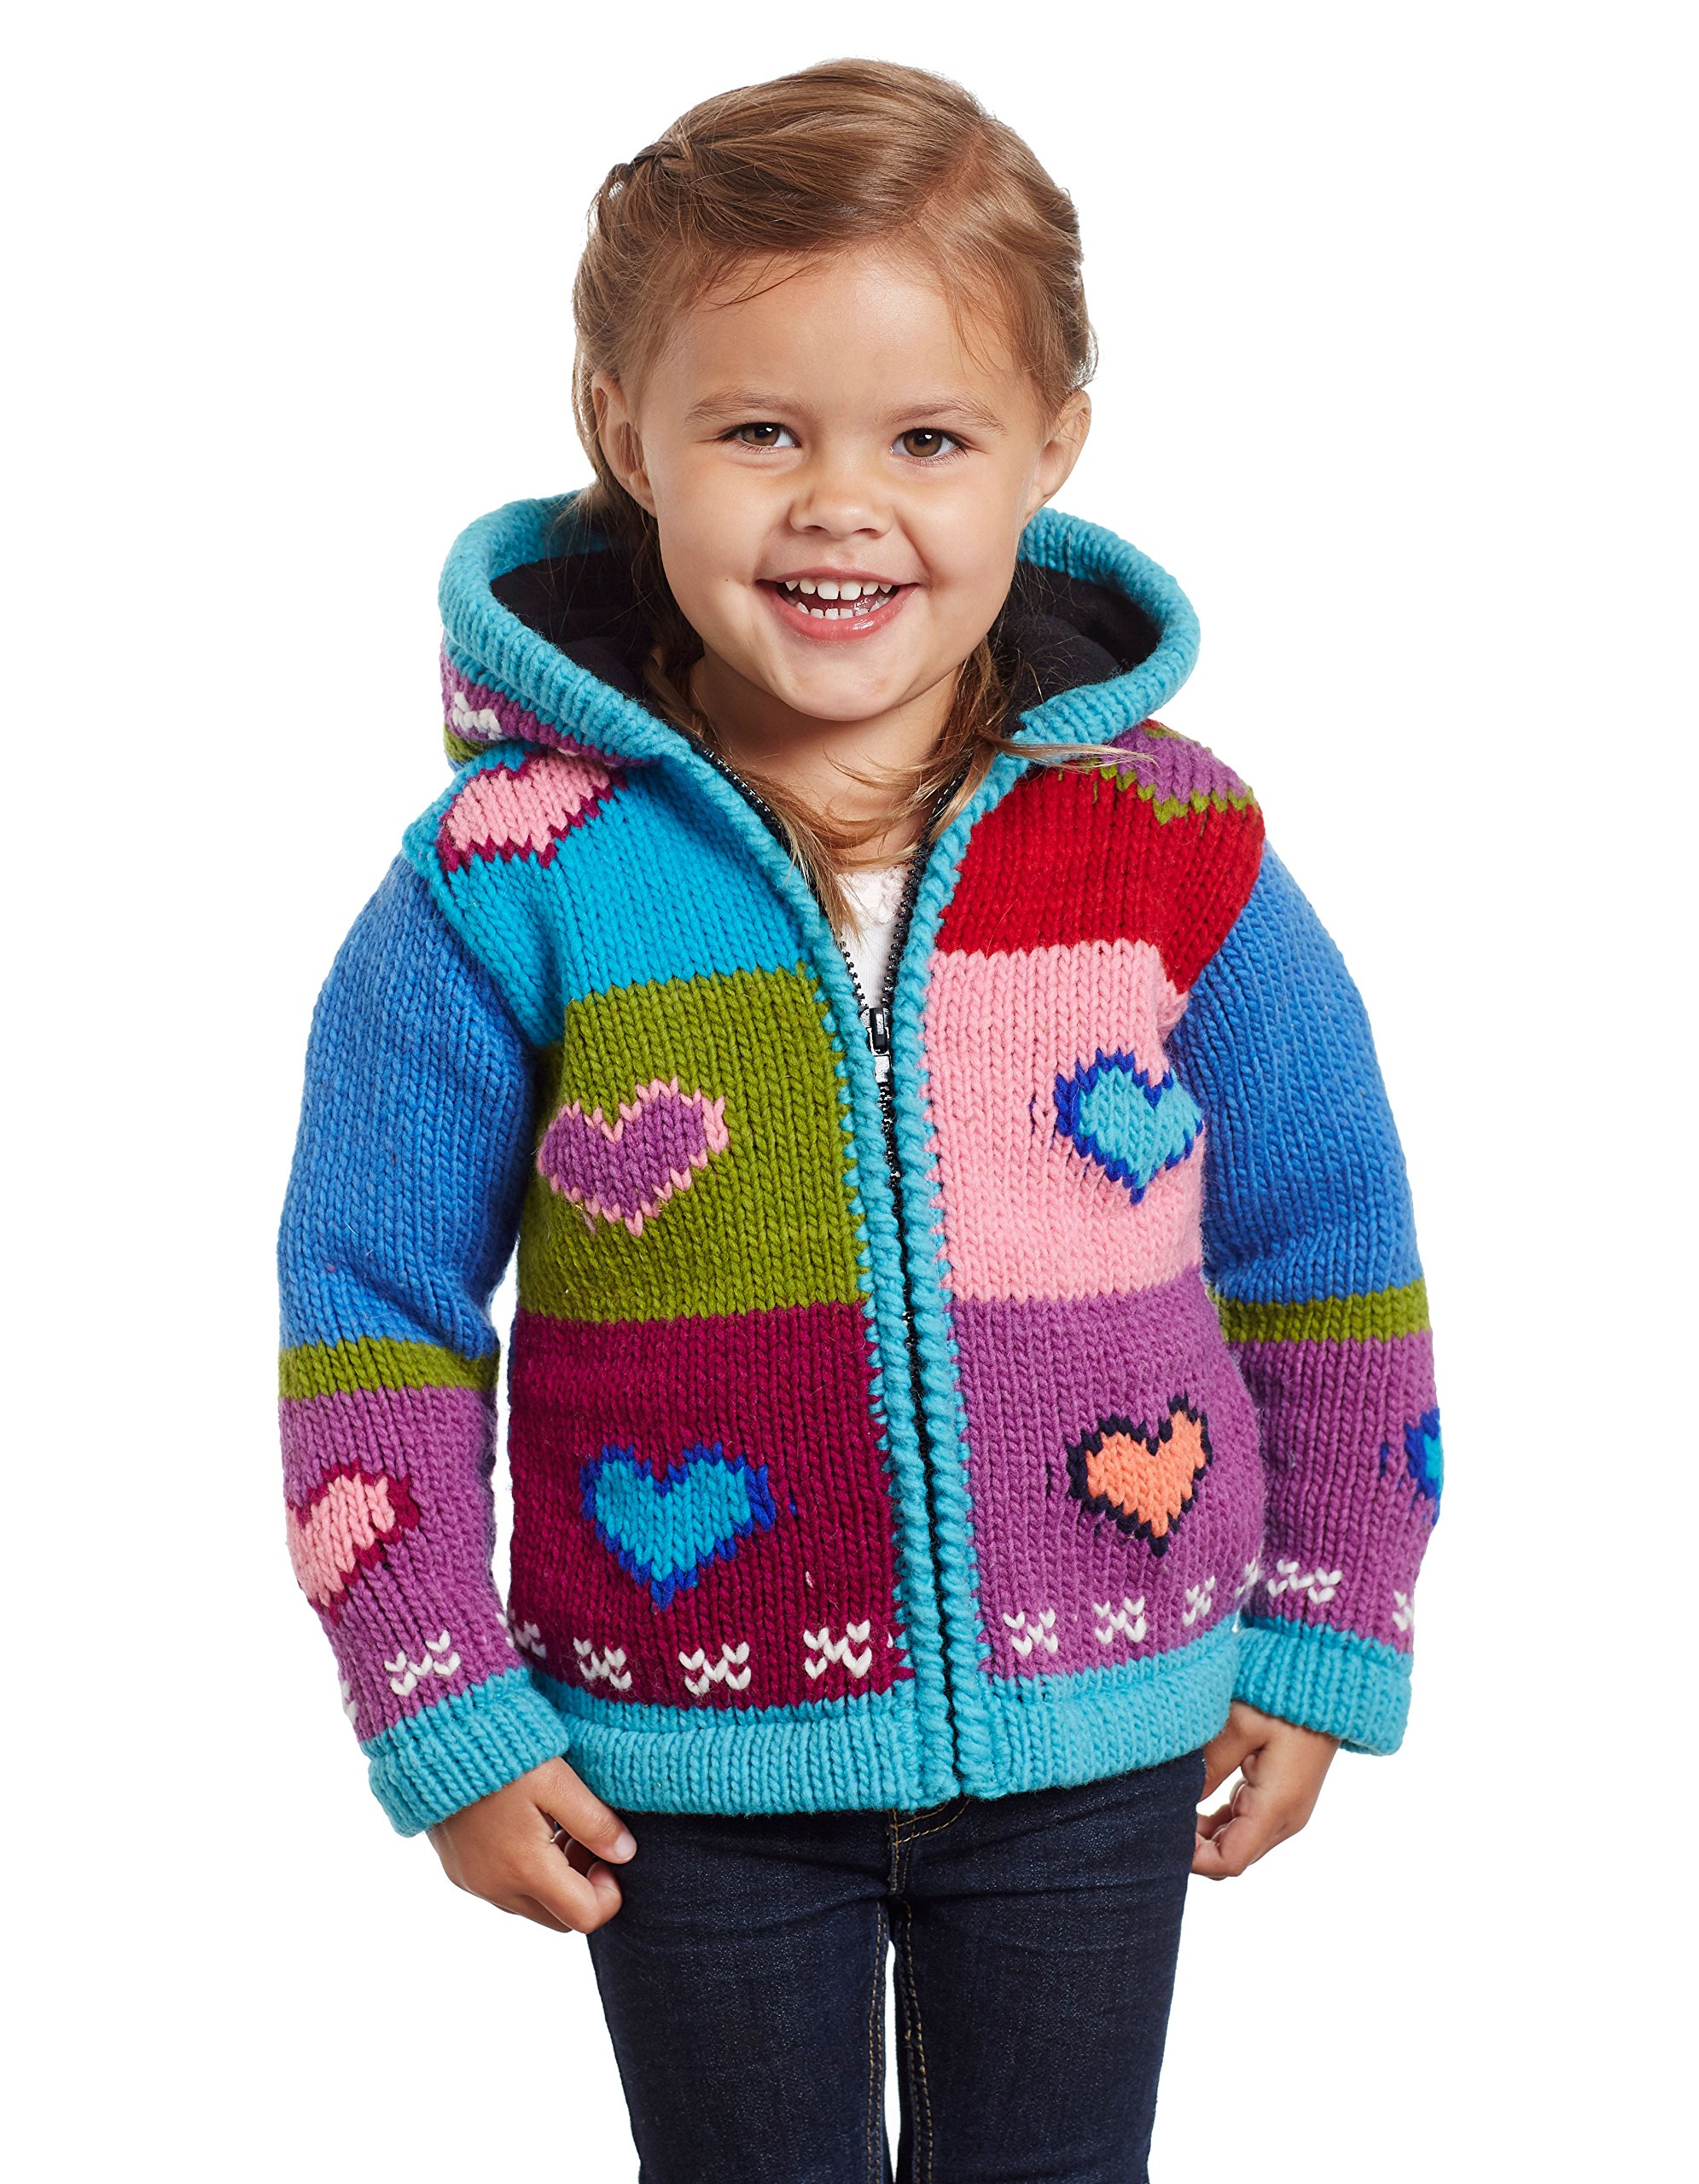 Invisible World 100% Wool Hand Knit Lined Children's Jackets Love 1-2 Year Old